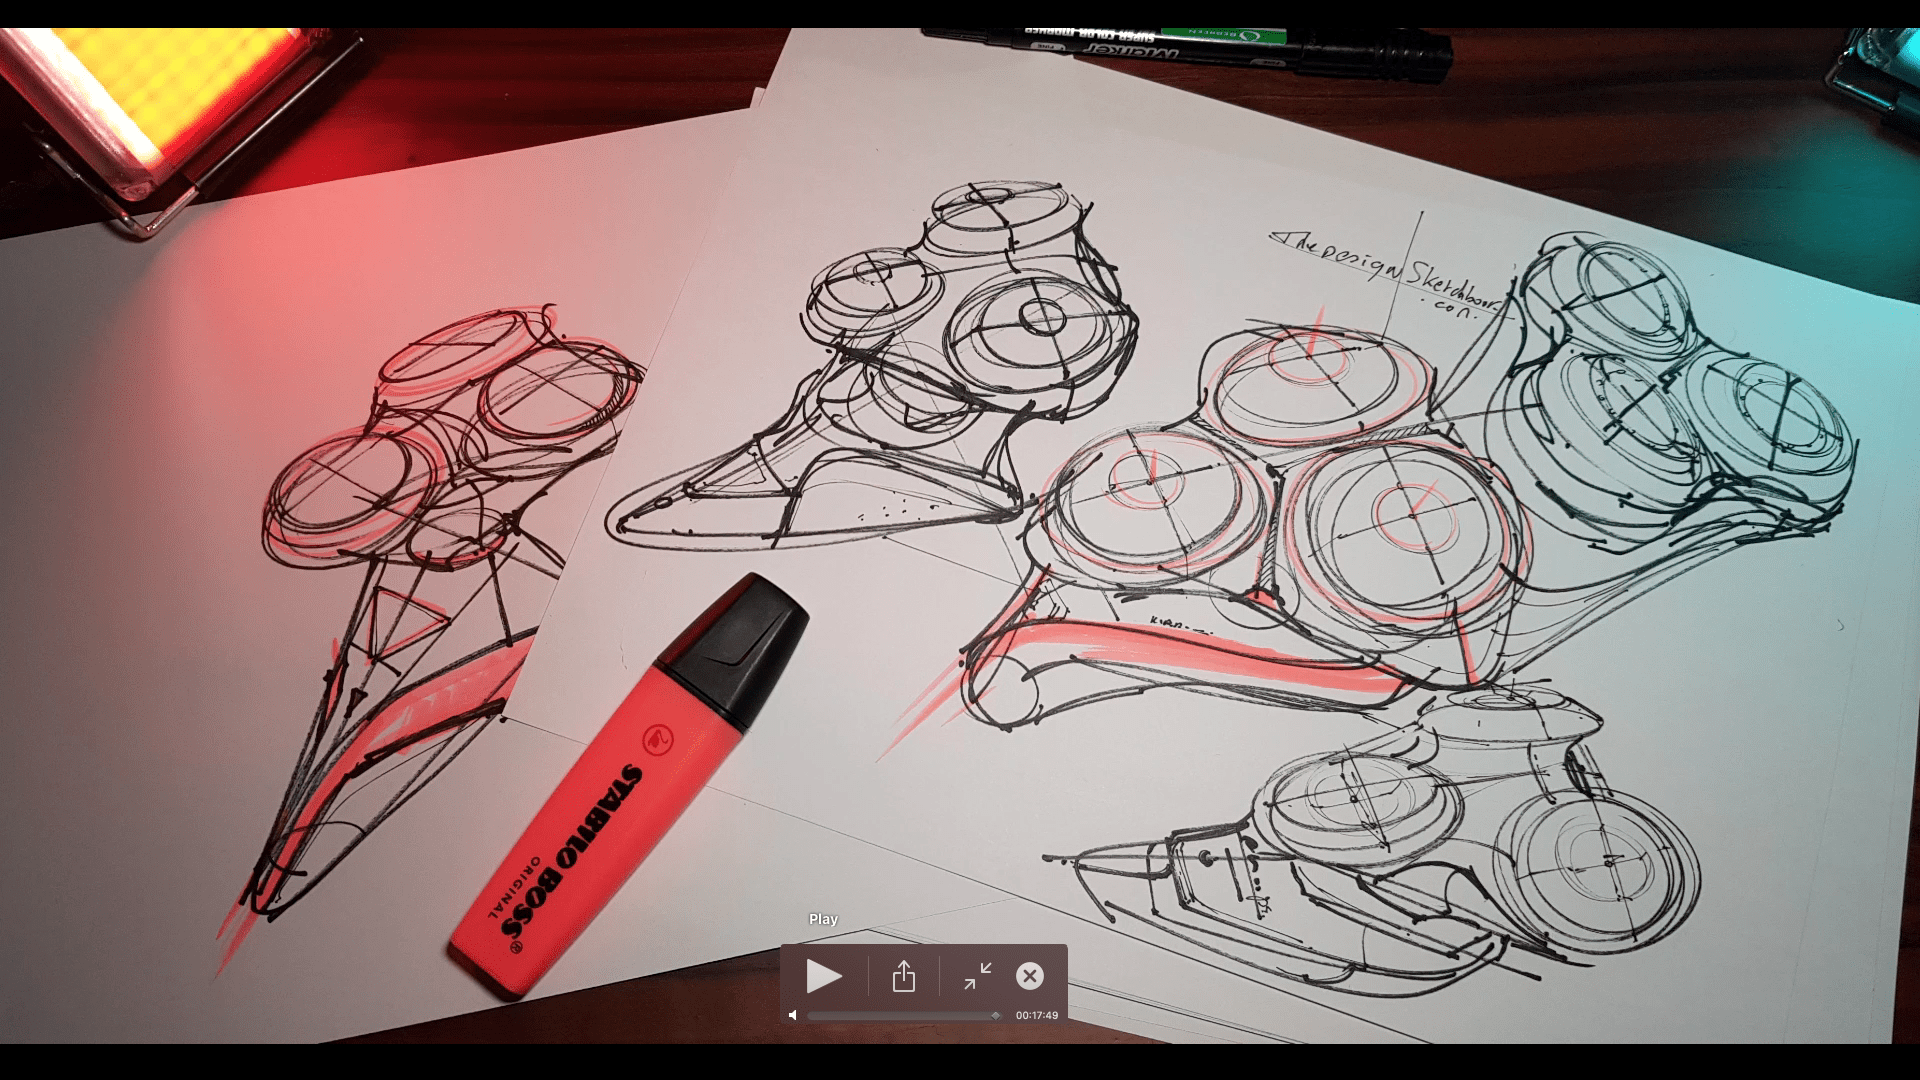 Sketching an electric shaver PHILIPS with the pilot twin marker pen - the design sketchbook - chung chou tac h